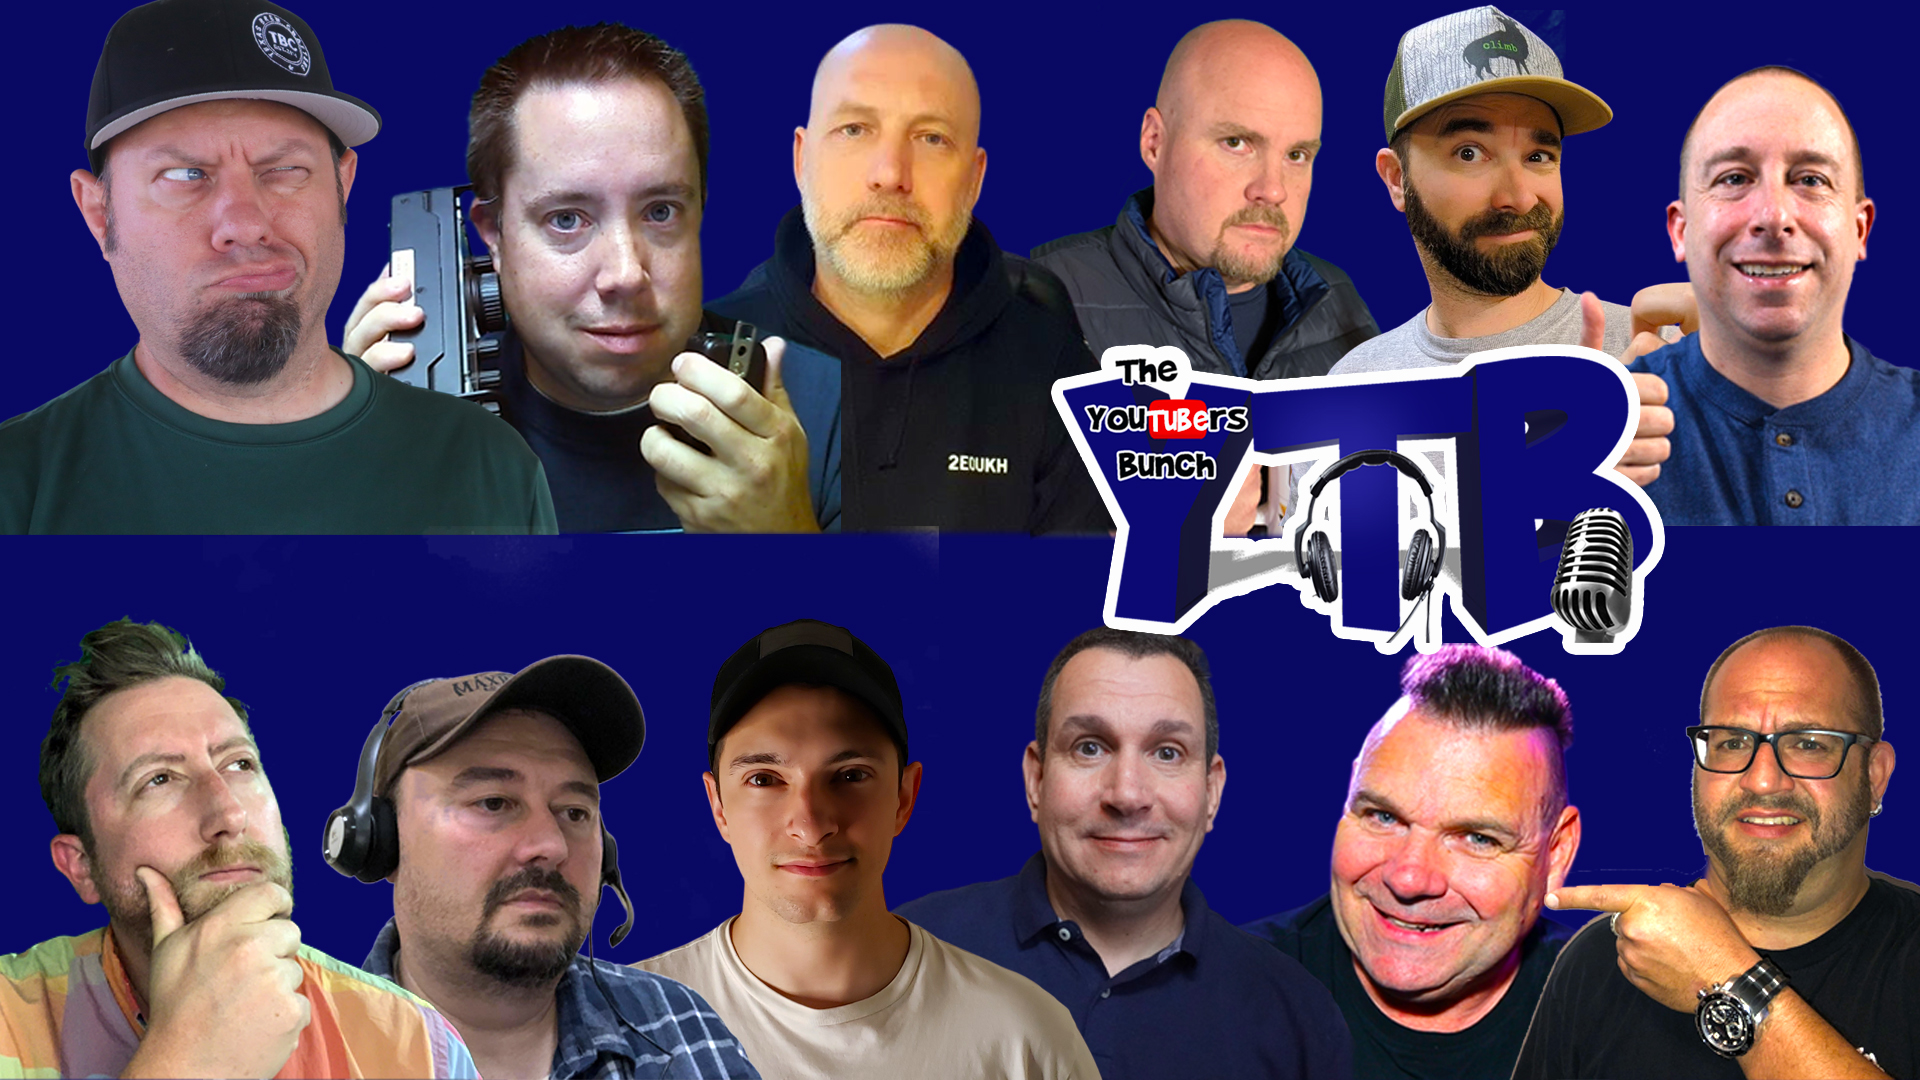 Episode 519: Ham Radio Contesting Ethics – To Livestream Or Not?  YouTubers Bunch #21